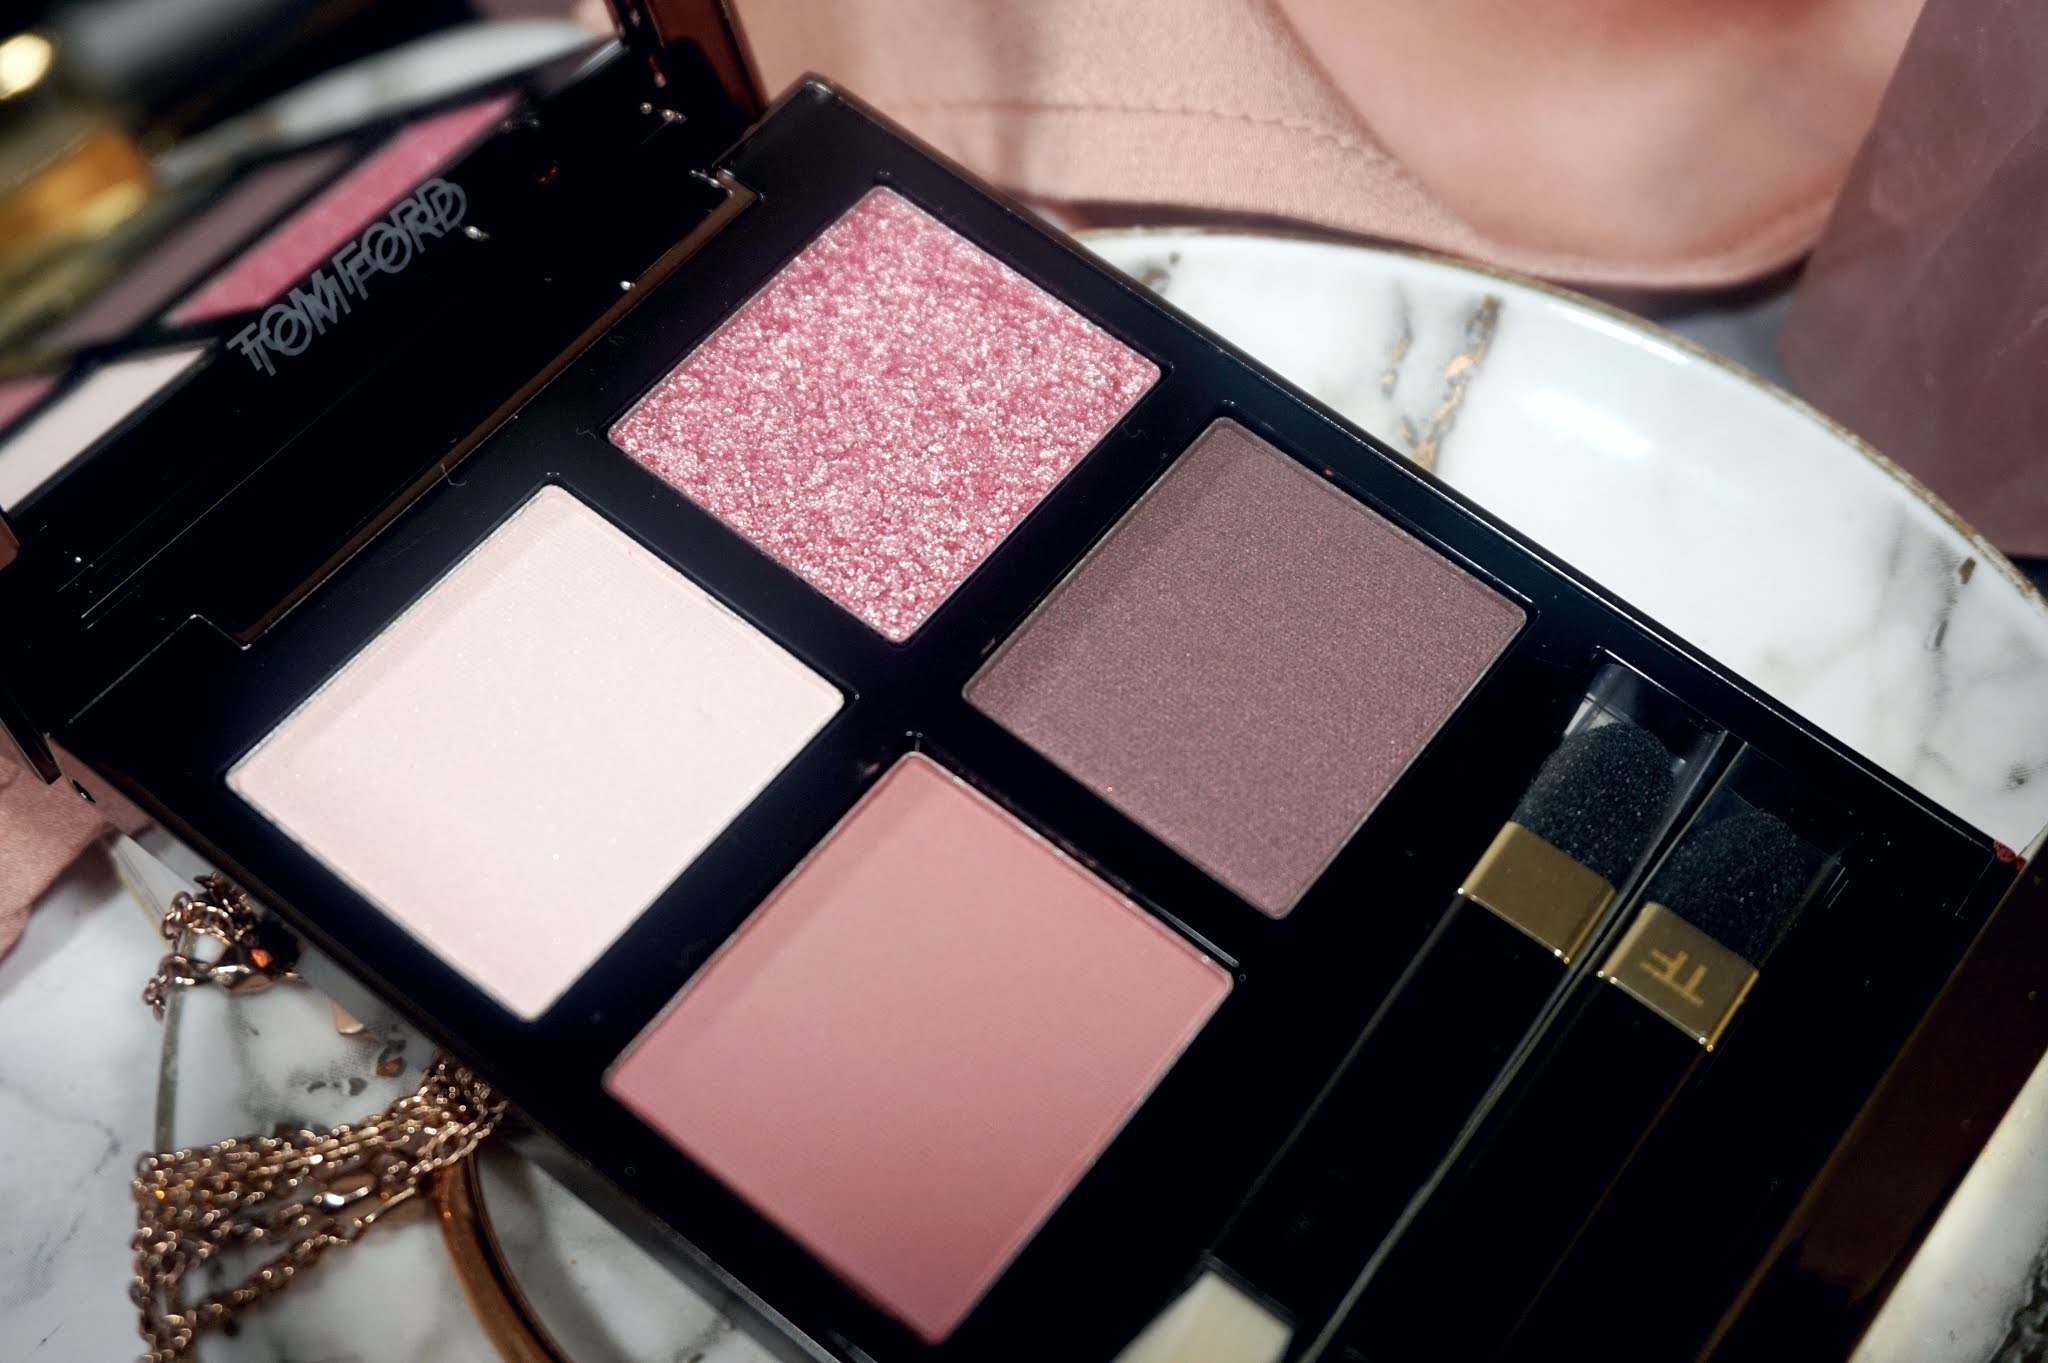 Tom Ford Insolent Rose Eye Color Quad Review and Swatches